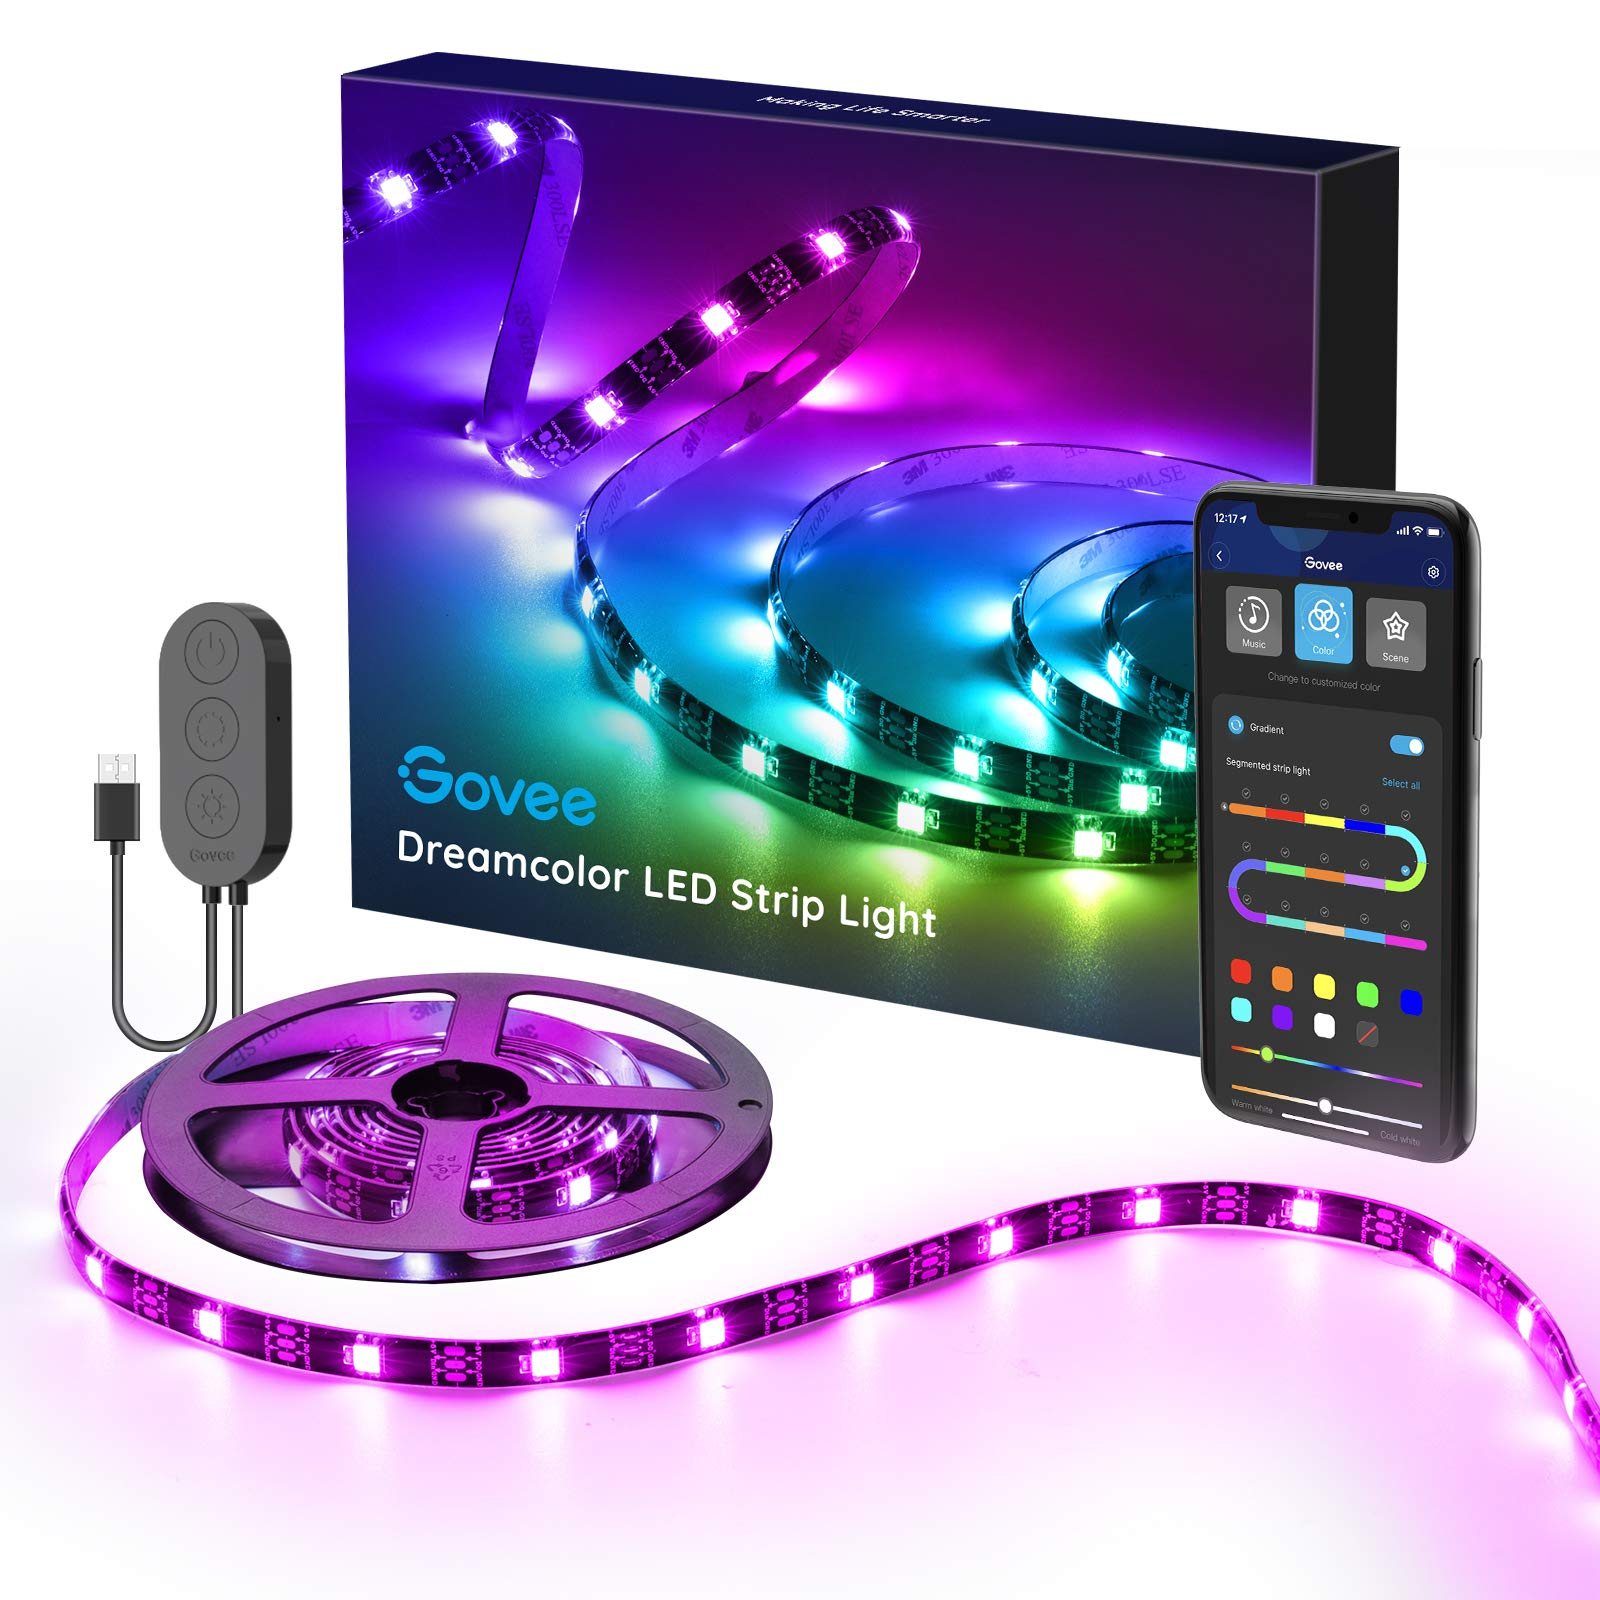 Govee TV LED Strip Lights, 6.56FT RGBIC TV LED Backlights with App Control, Music Sync, Scene Mode, Color Changing LED Light Strip with Timer for HDTV PC Computer Gaming, USB Powered